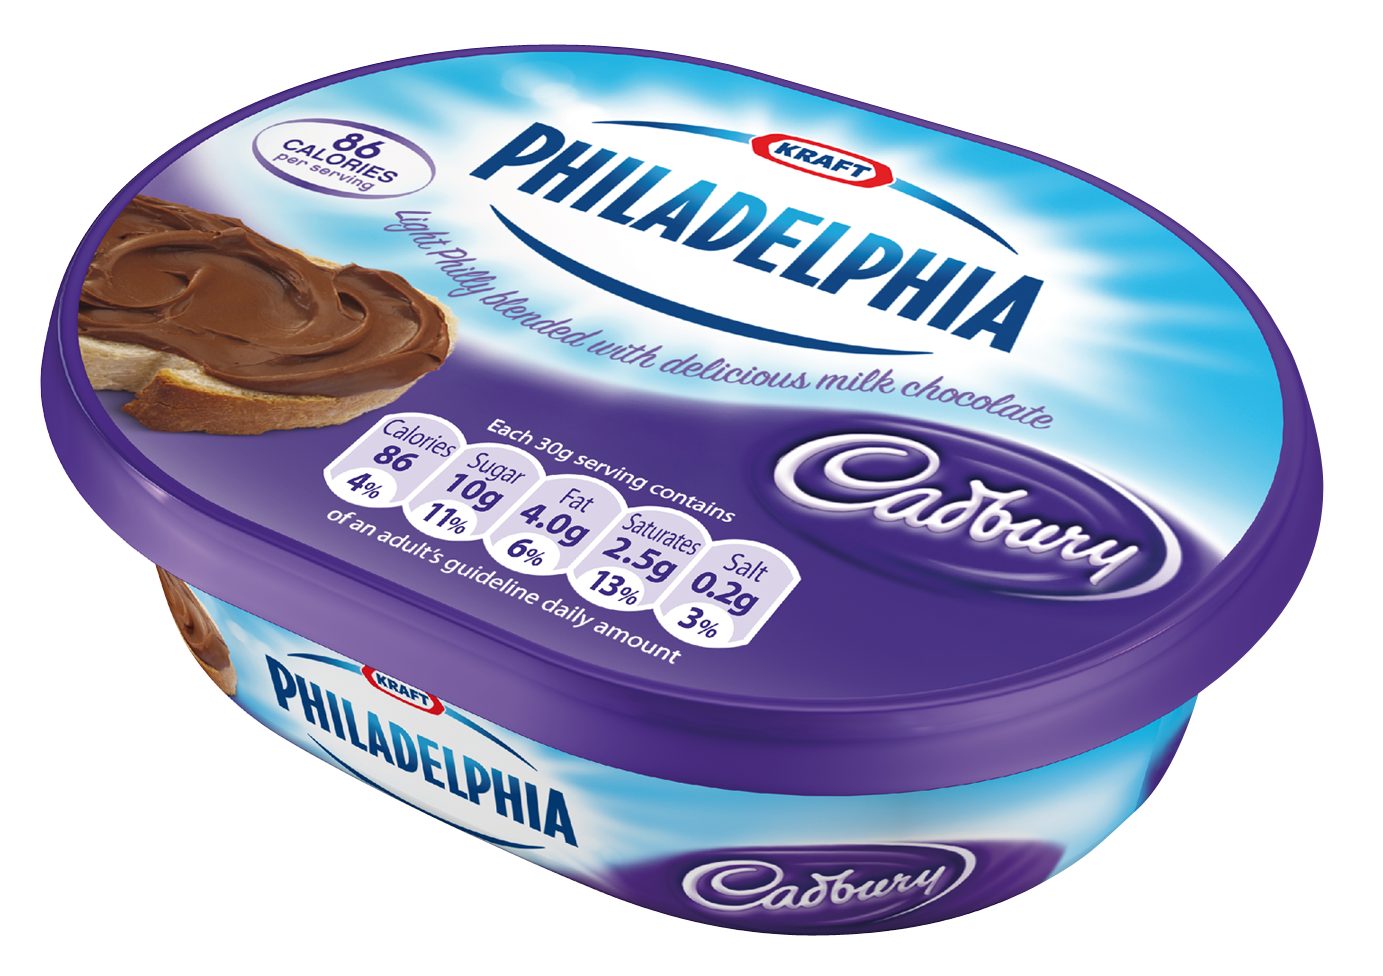 Can I Eat It iPhone App lets you know what is in the Philadelphia Light Philly with Cadbury Milk Chocolate